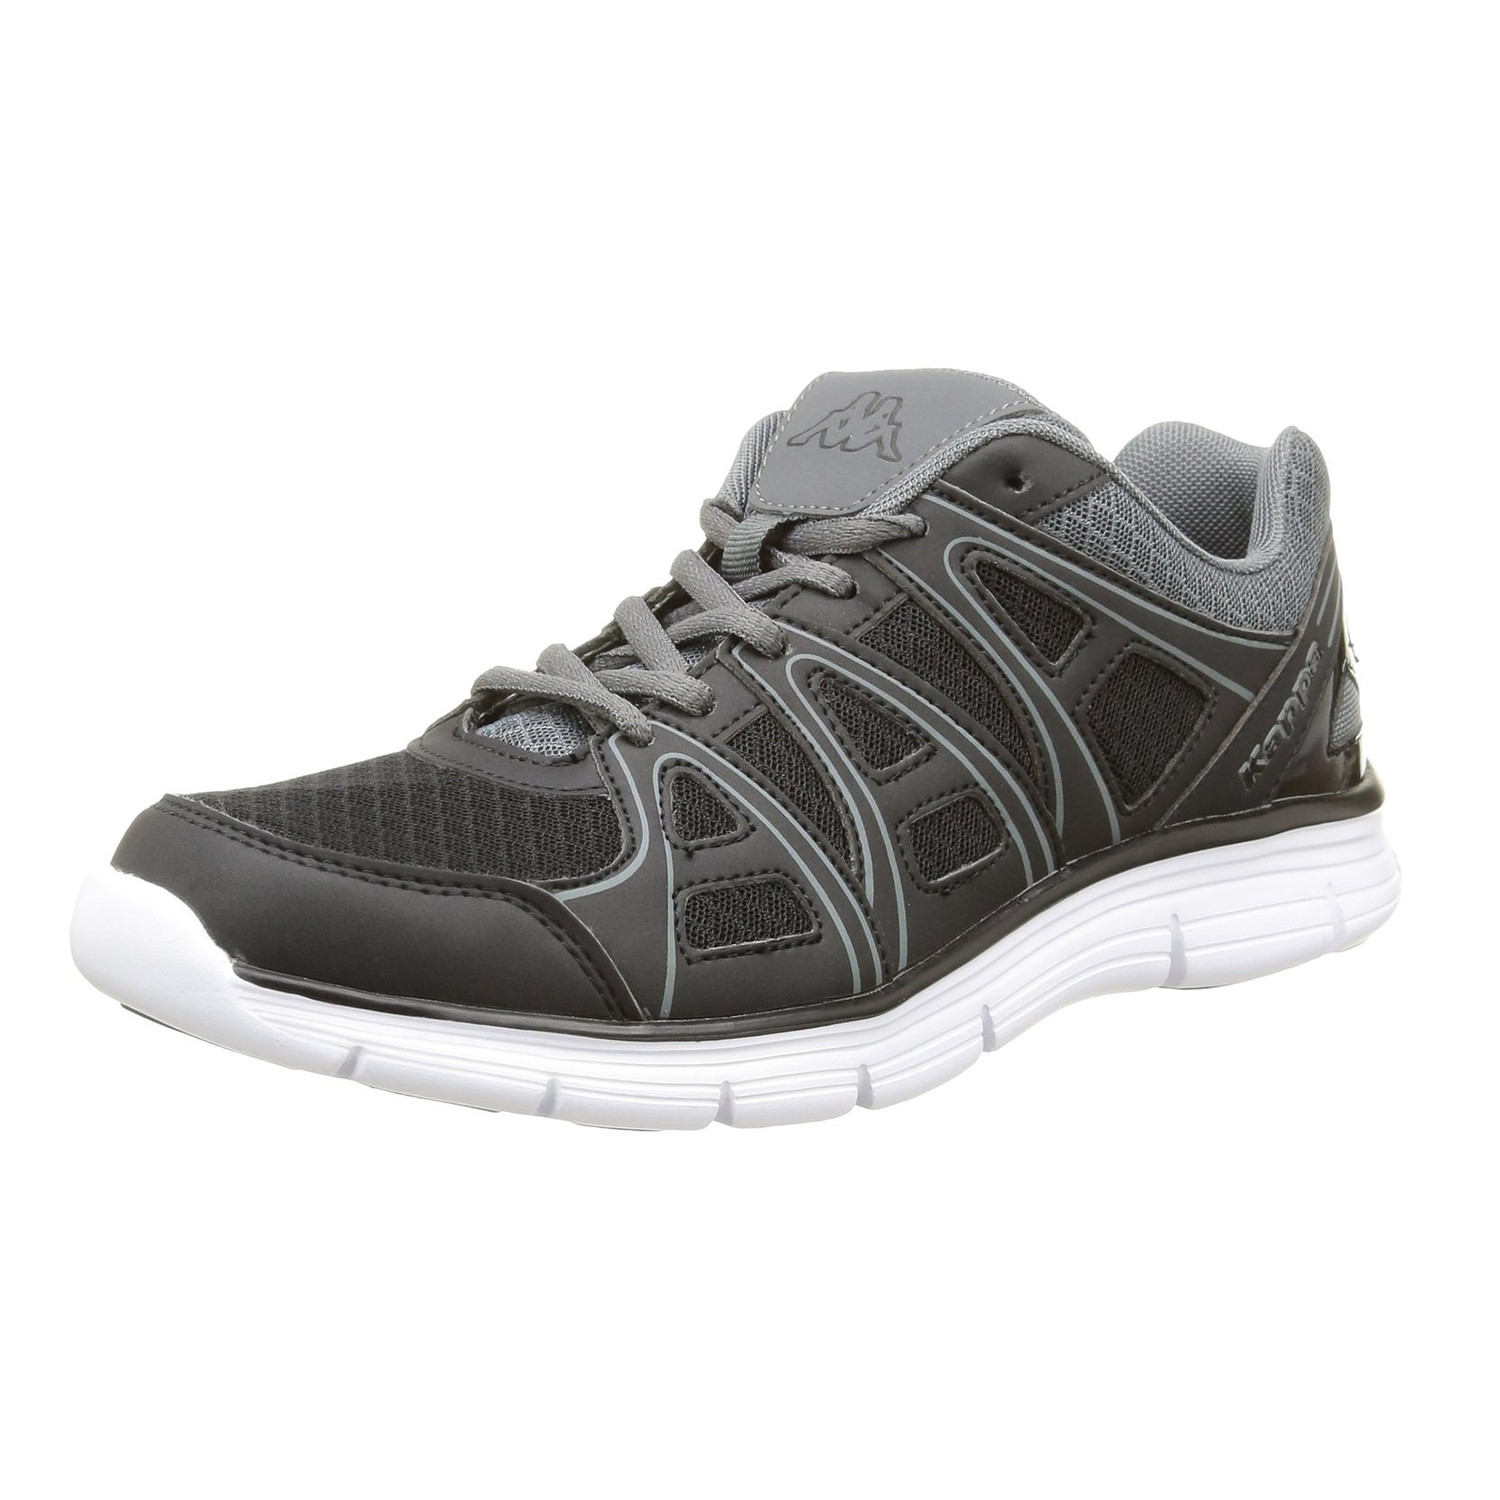 Ulaker Chaussure Homme